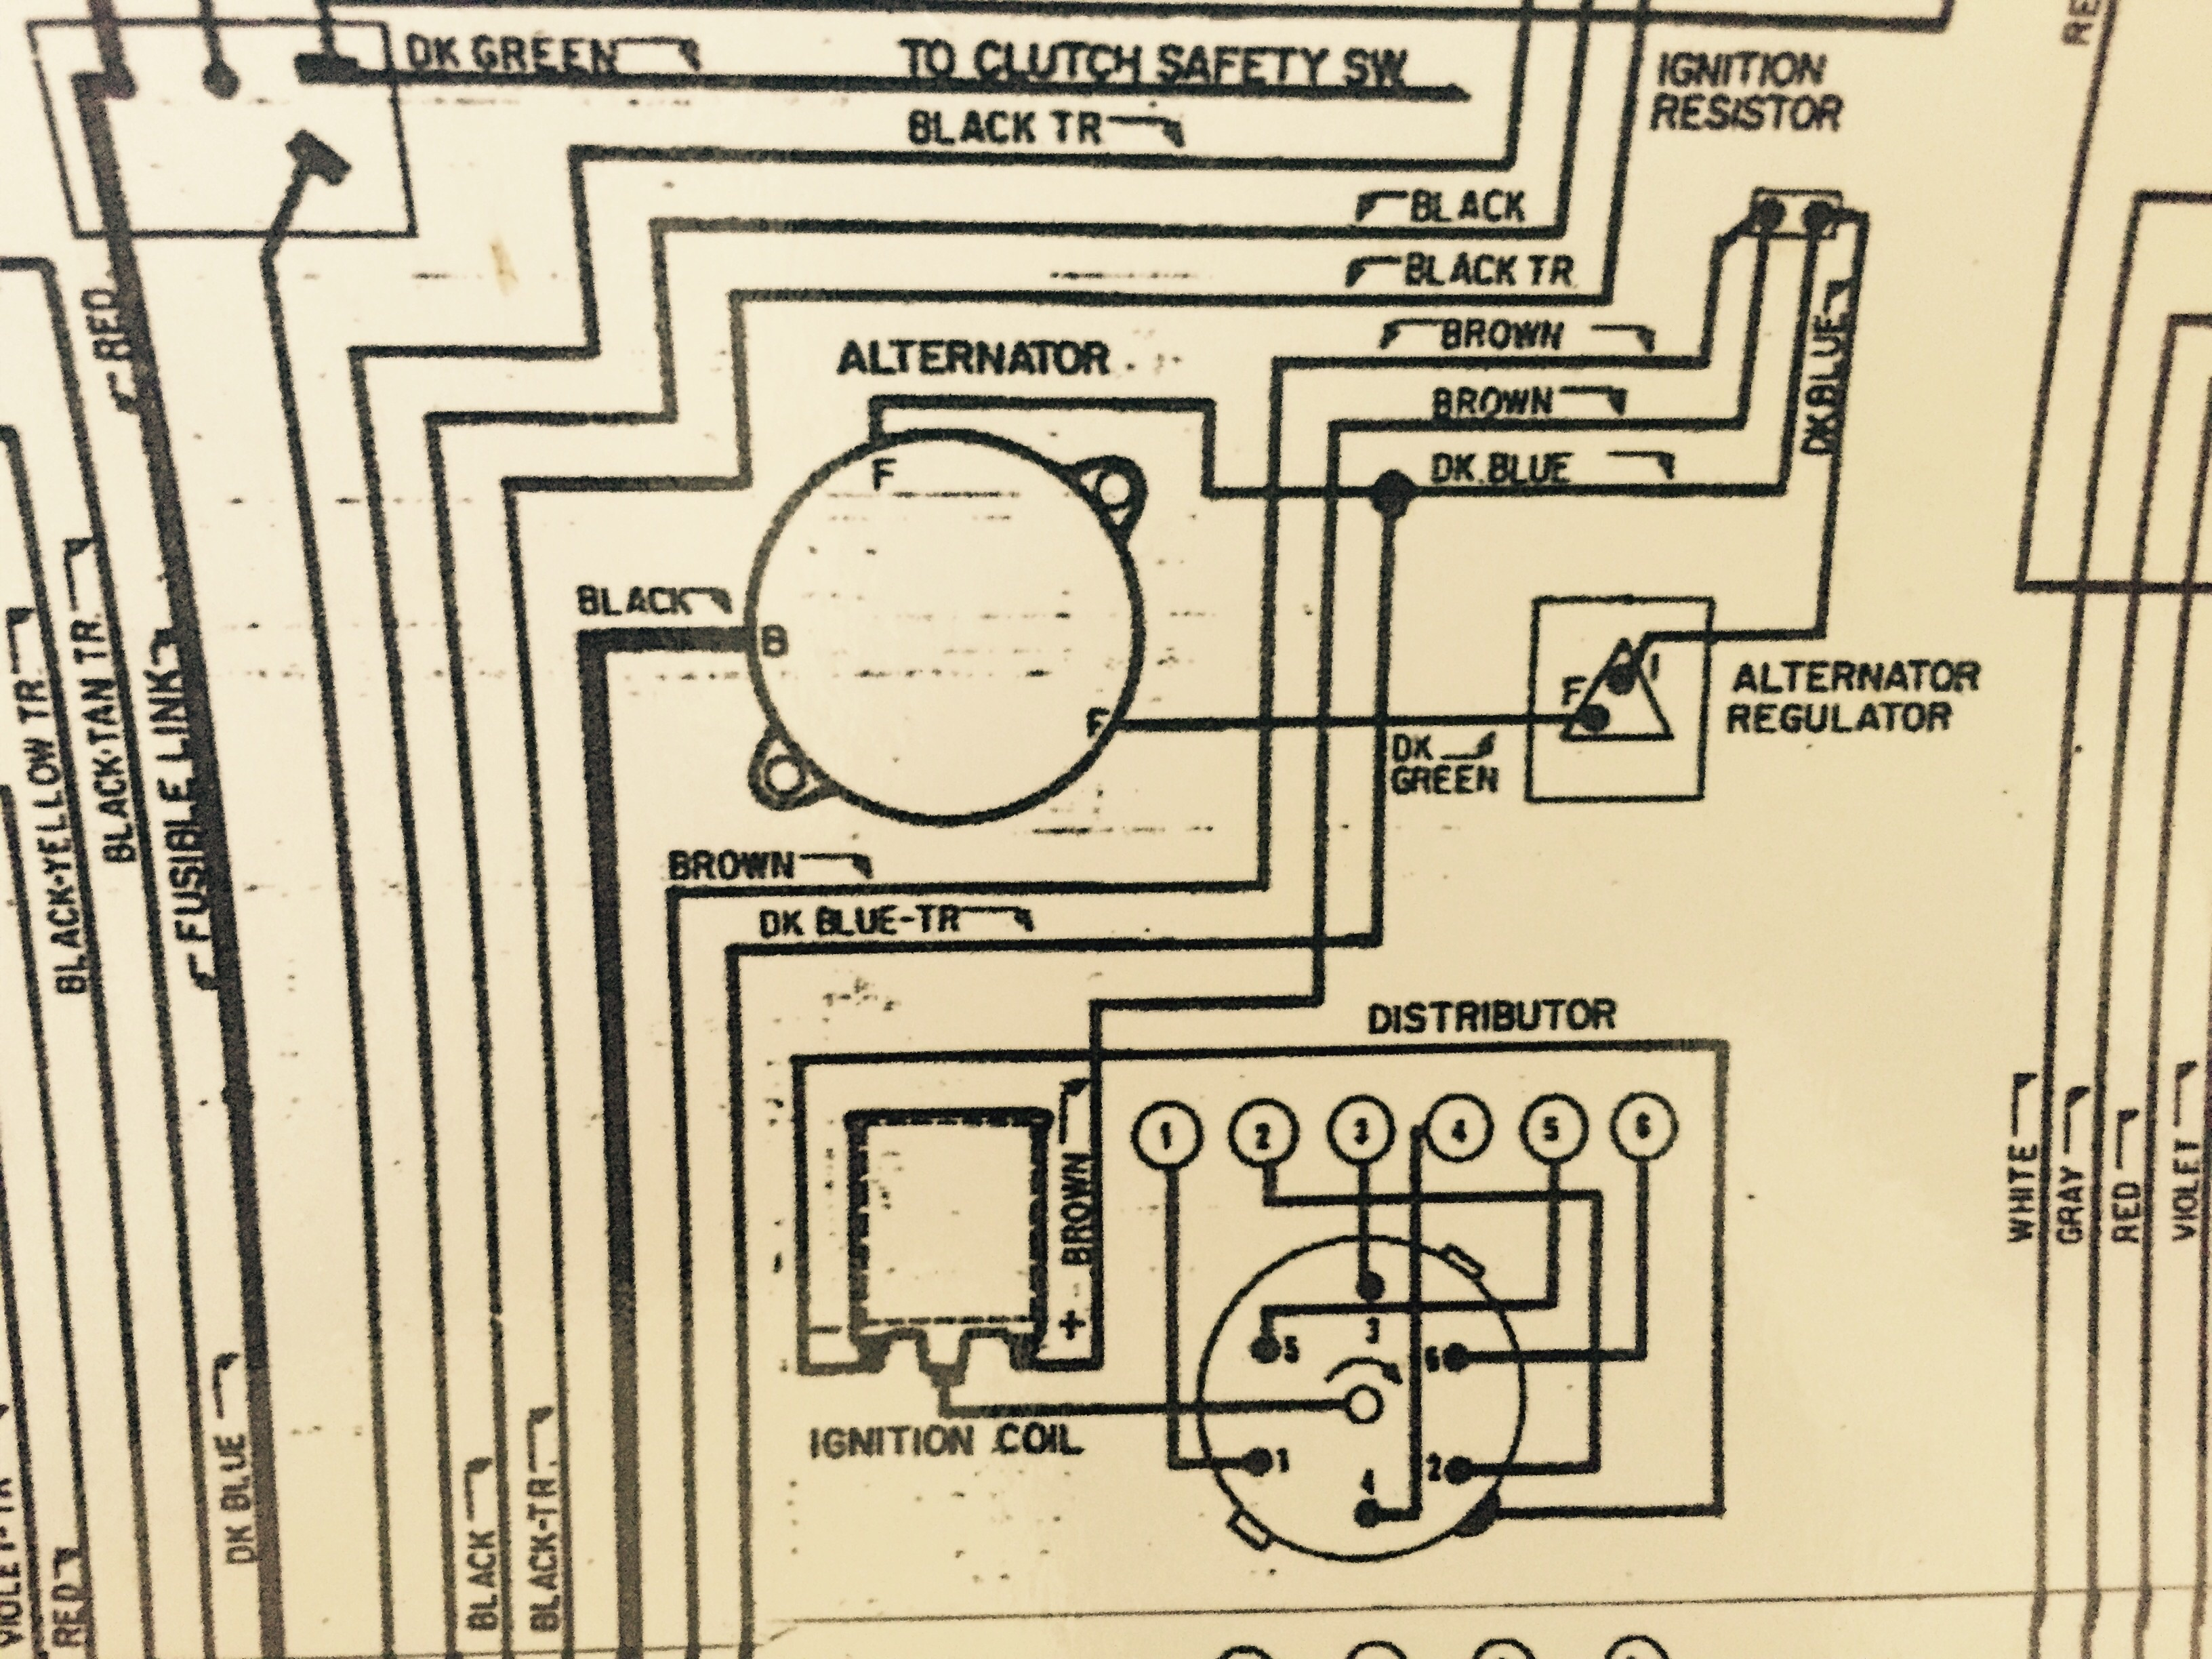 Ecore Coil Wiring Gm Library 5 3l Harness Msd Hei Conversion Help Page 2 For A Bodies Only Mopar Forum Image